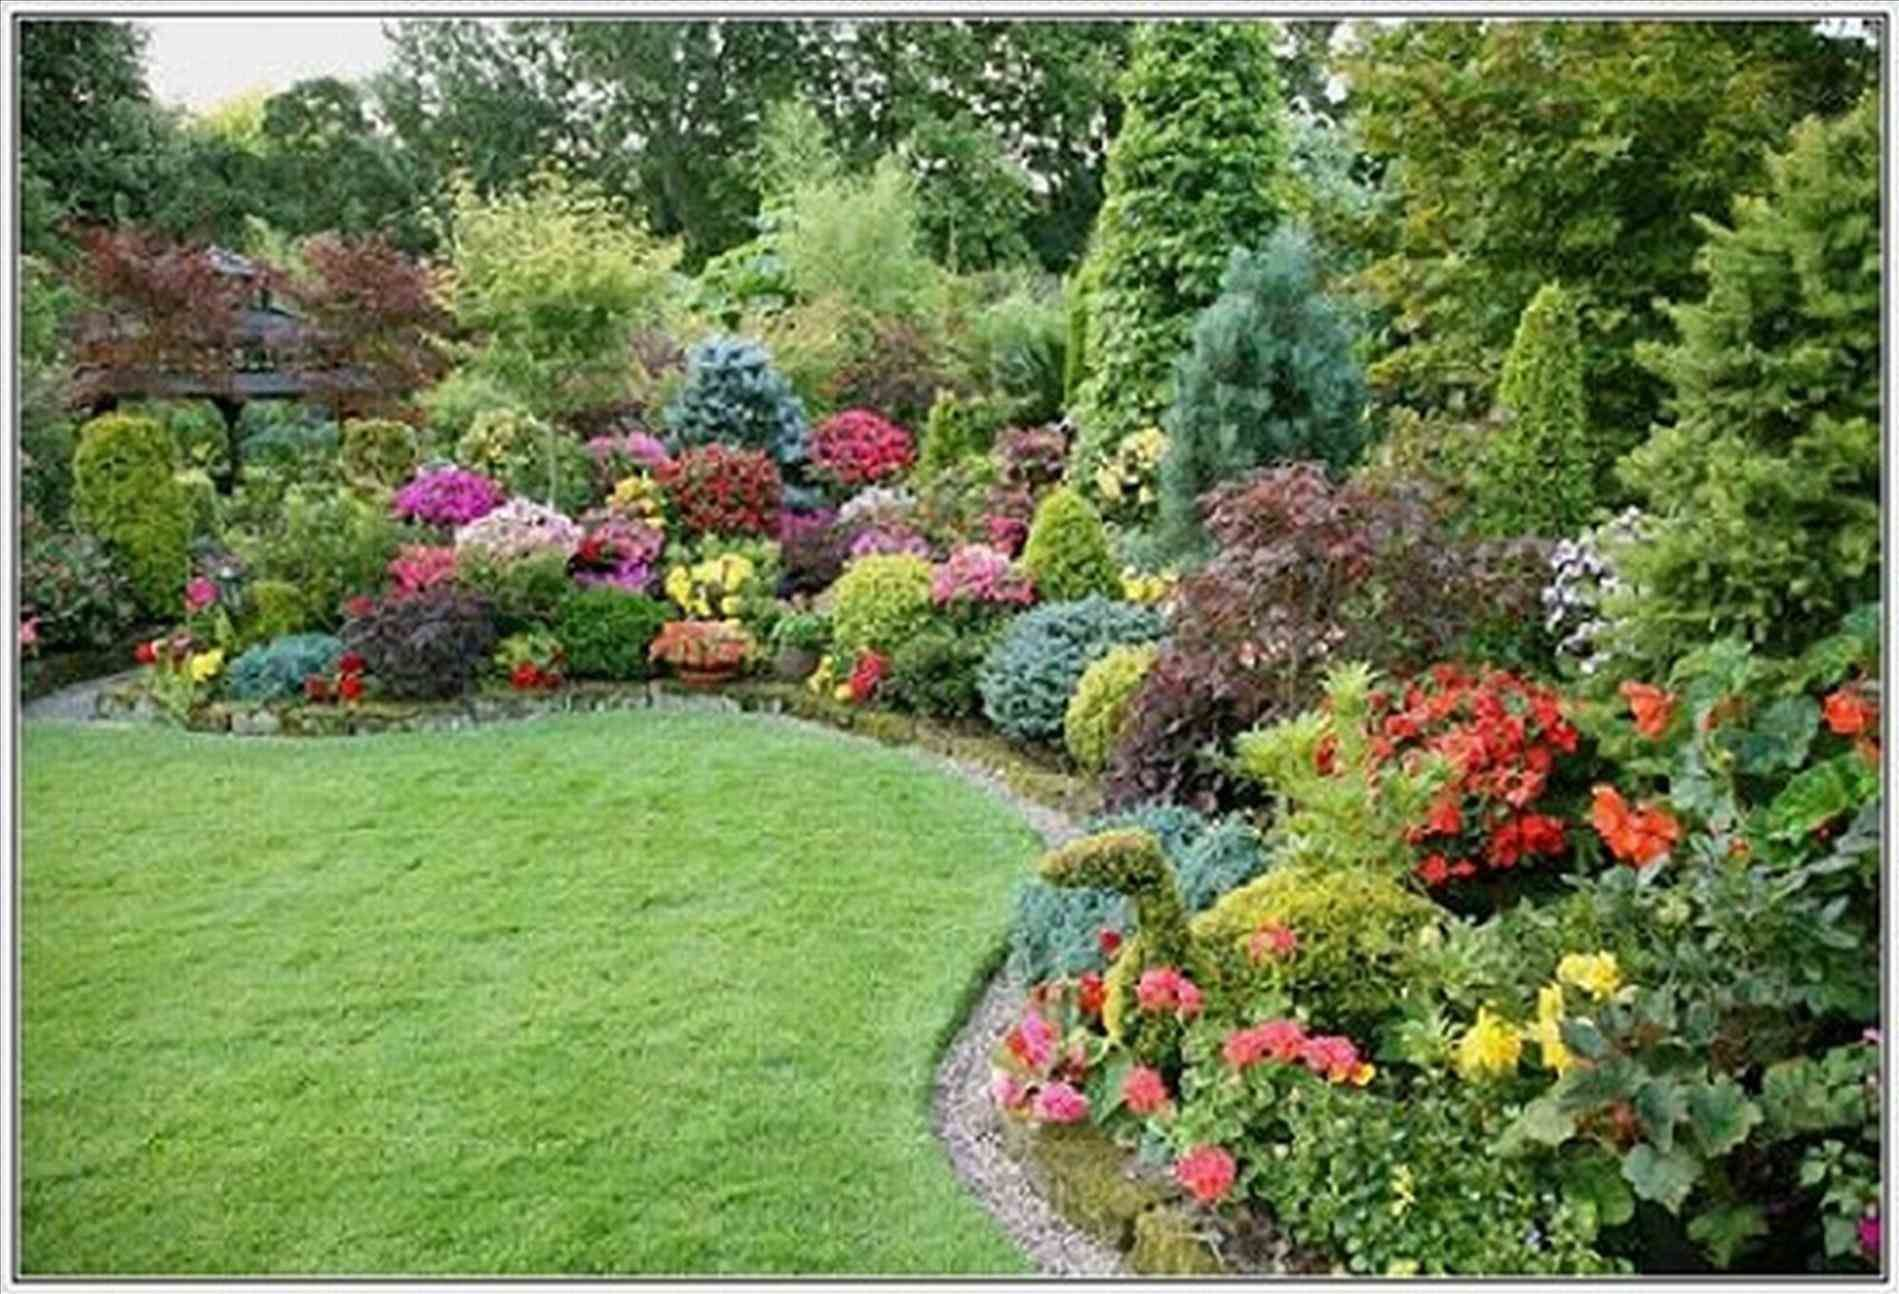 10 Pacific Northwest Garden Ideas Most Of The Awesome And Gorgeous Landscaping Inspiration Small Backyard Gardens Northwest Garden